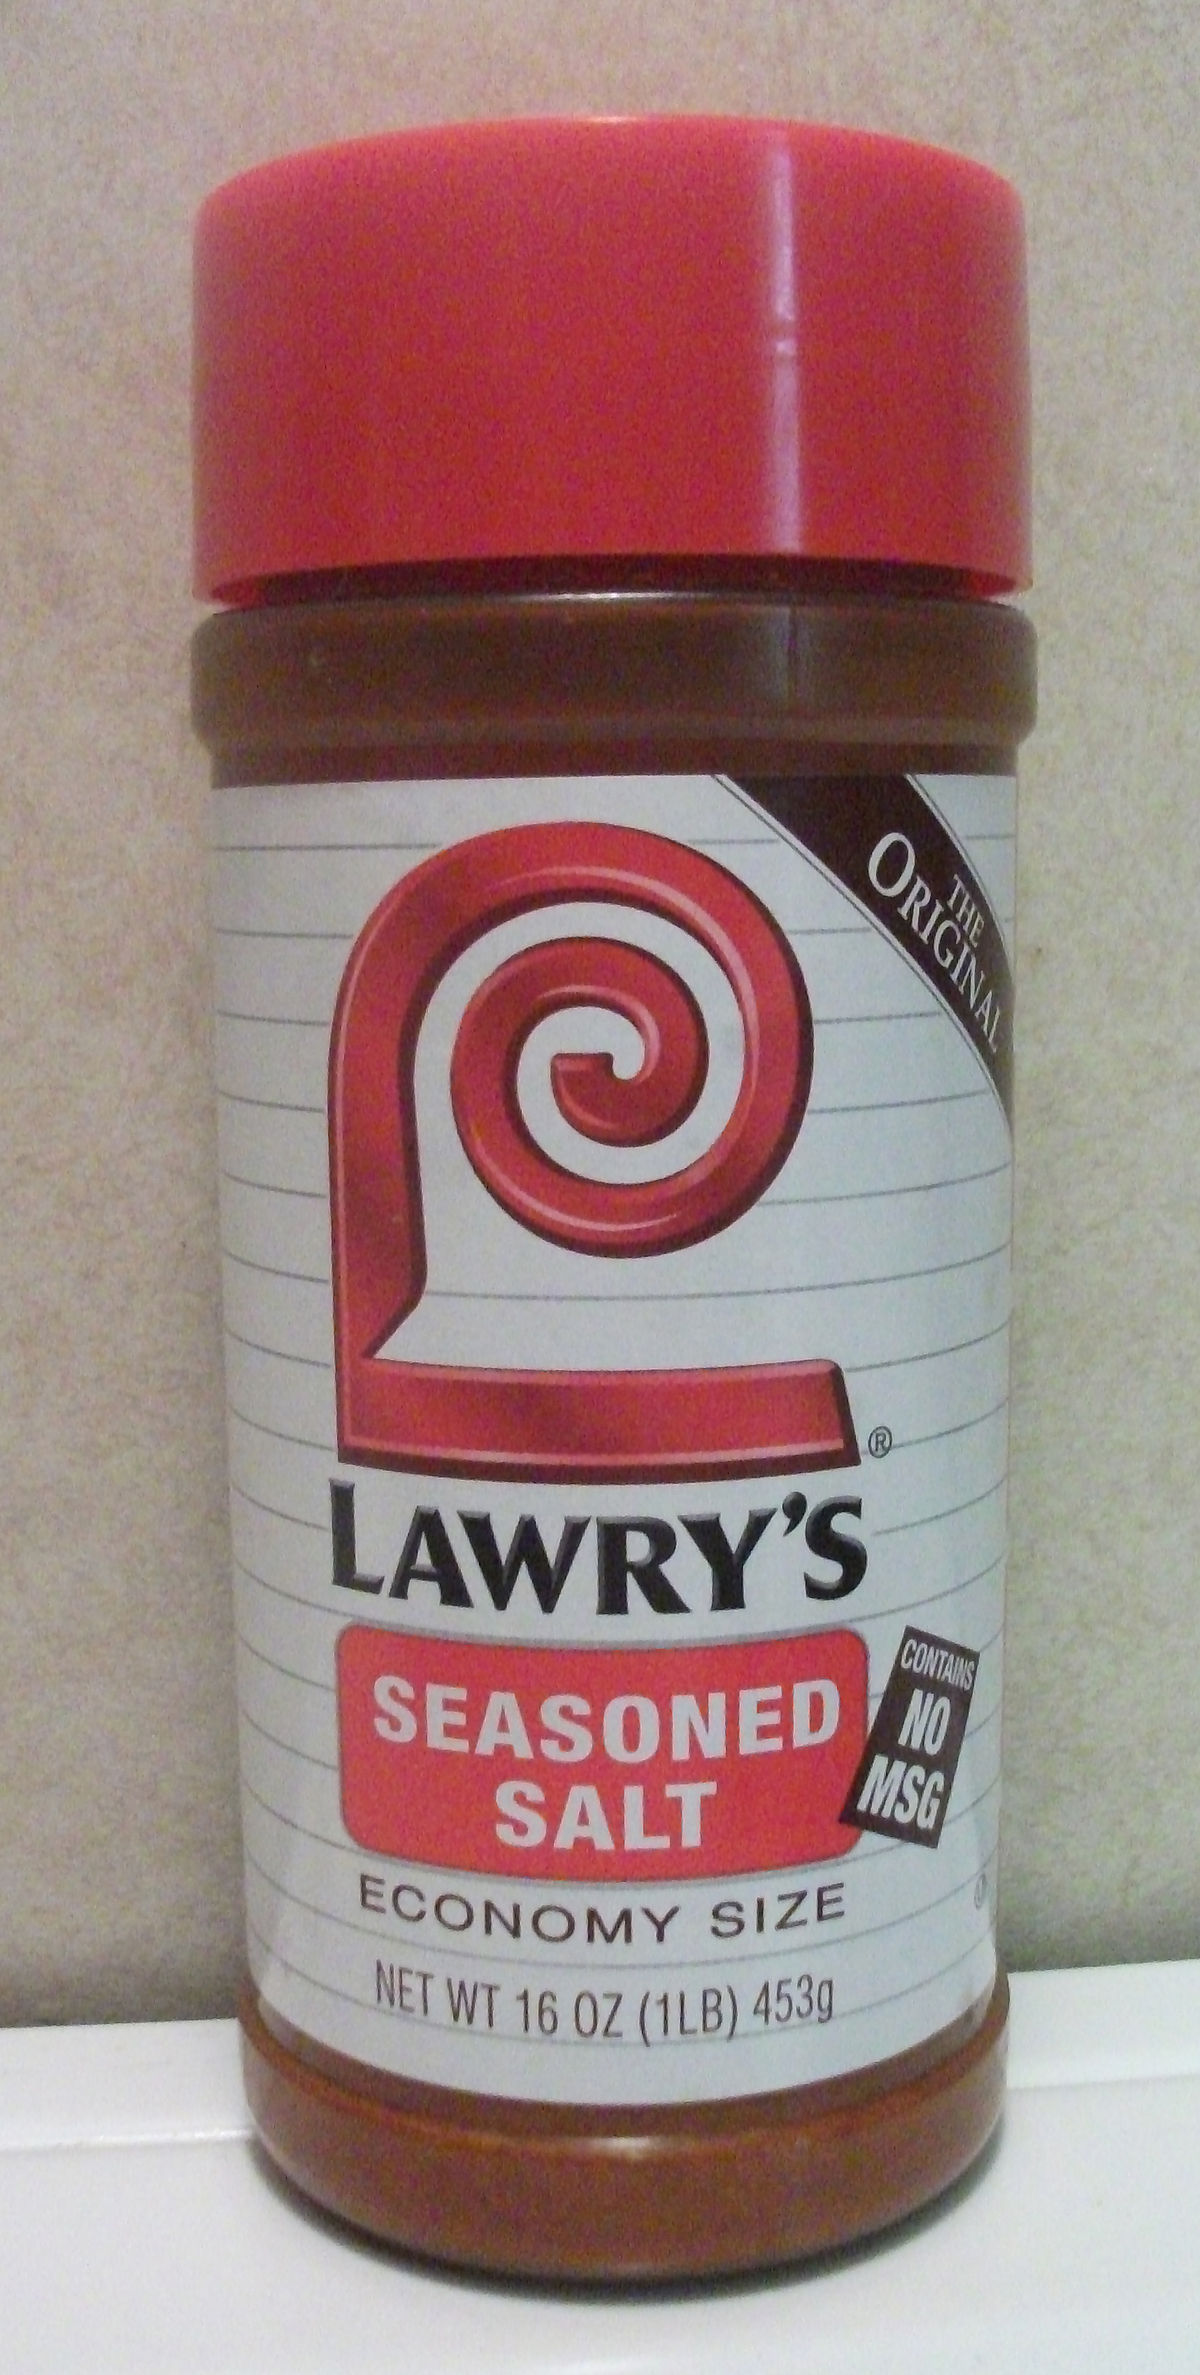 Lawry's Seasoned Salt - Wikipedia